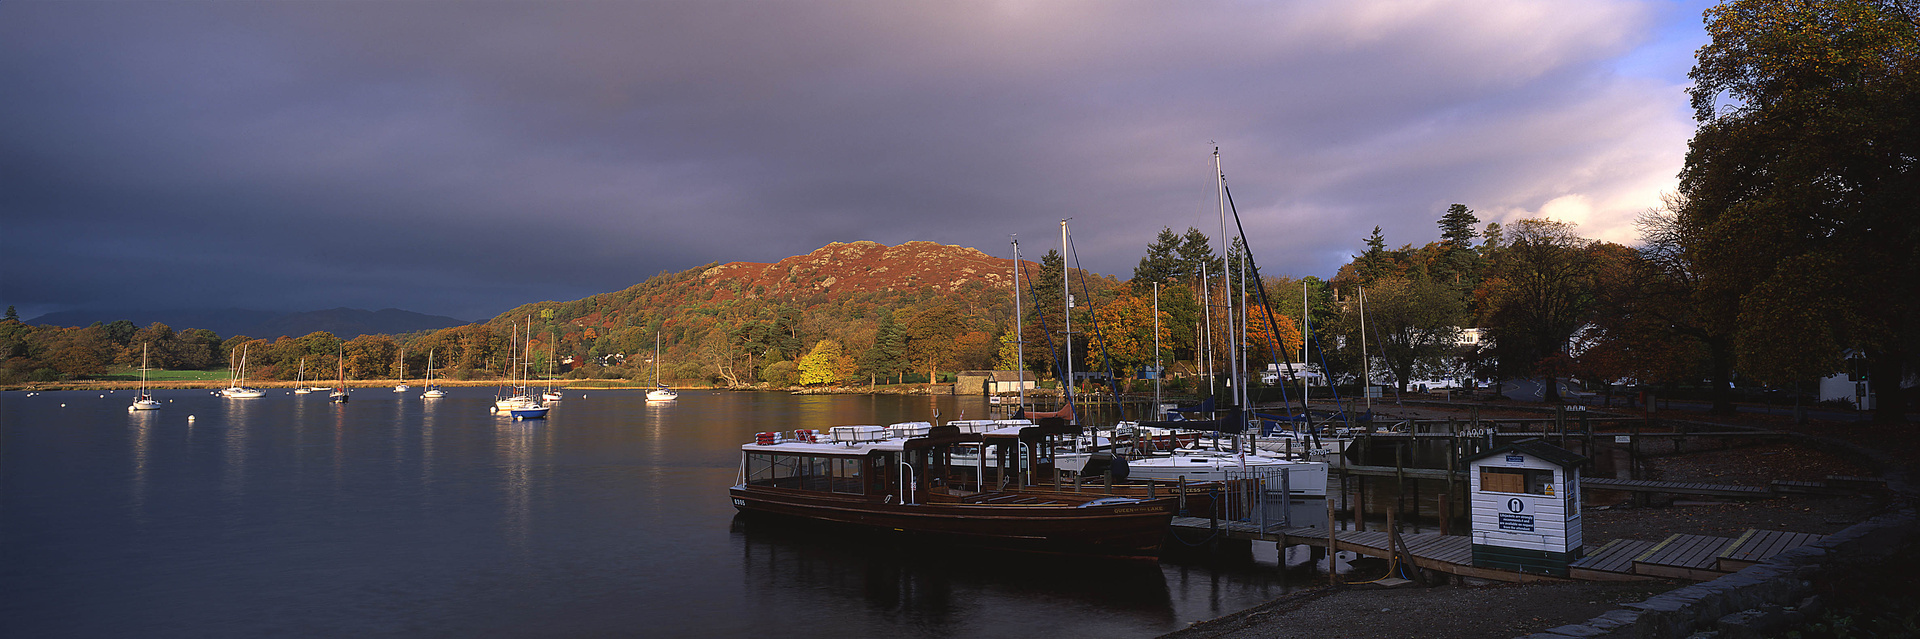 Lake_Dist_WaterHead_-_GX617_-_90mm_-_Fuji_RVP_-_Oc